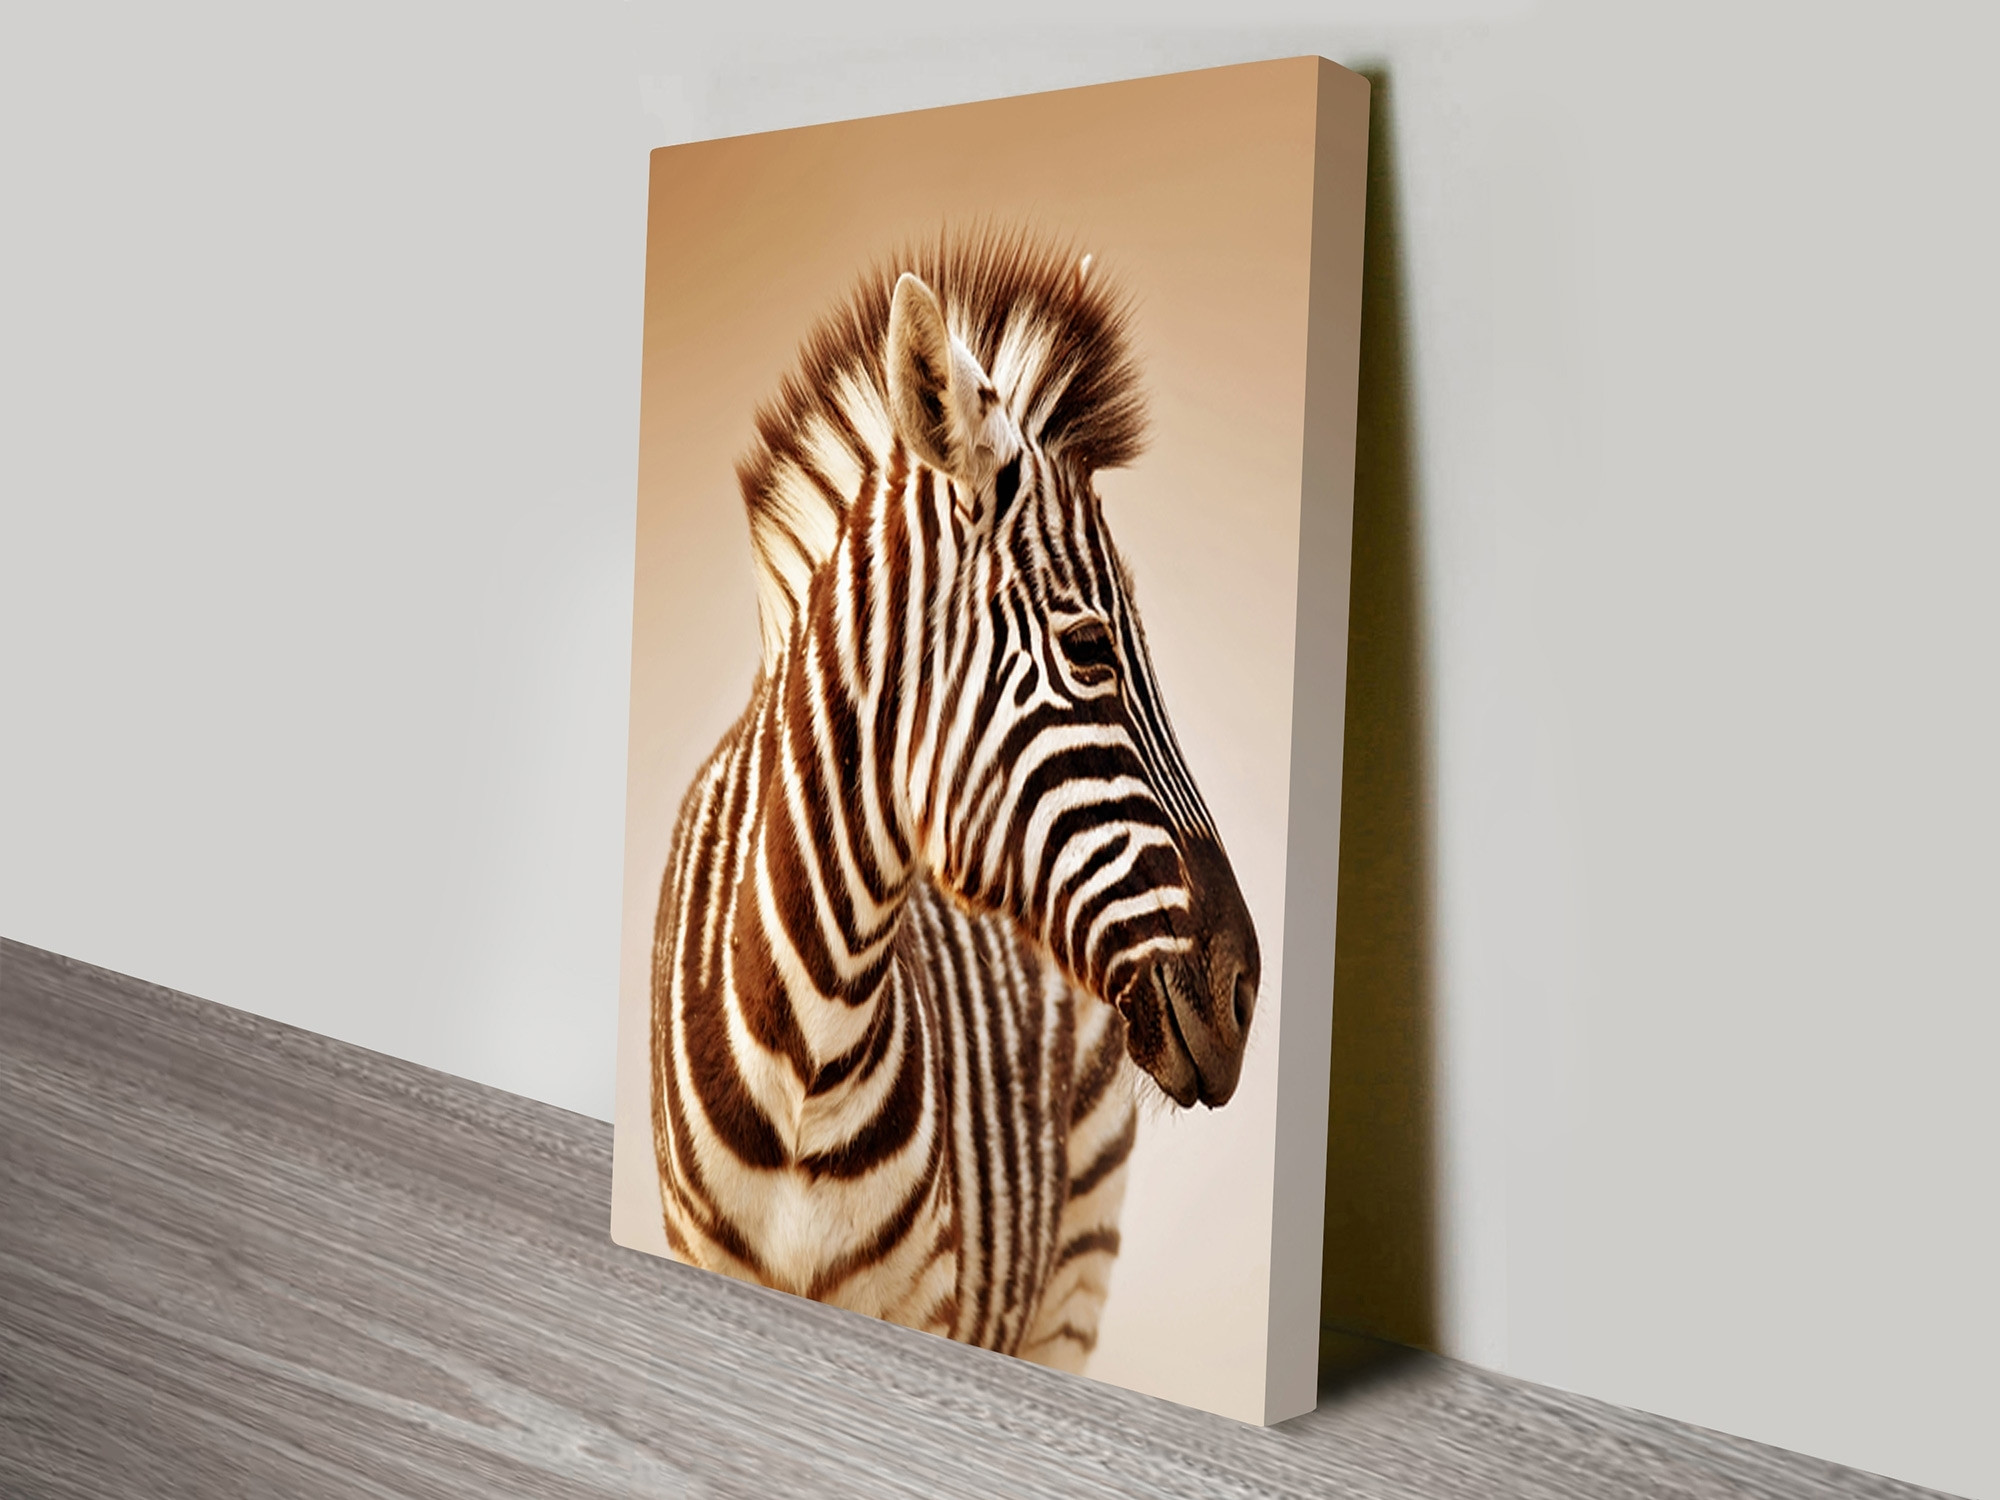 Zebra Sepia Canvas Wall Art Prints Wollongong Intended For Most Recent Zebra Canvas Wall Art (View 15 of 20)